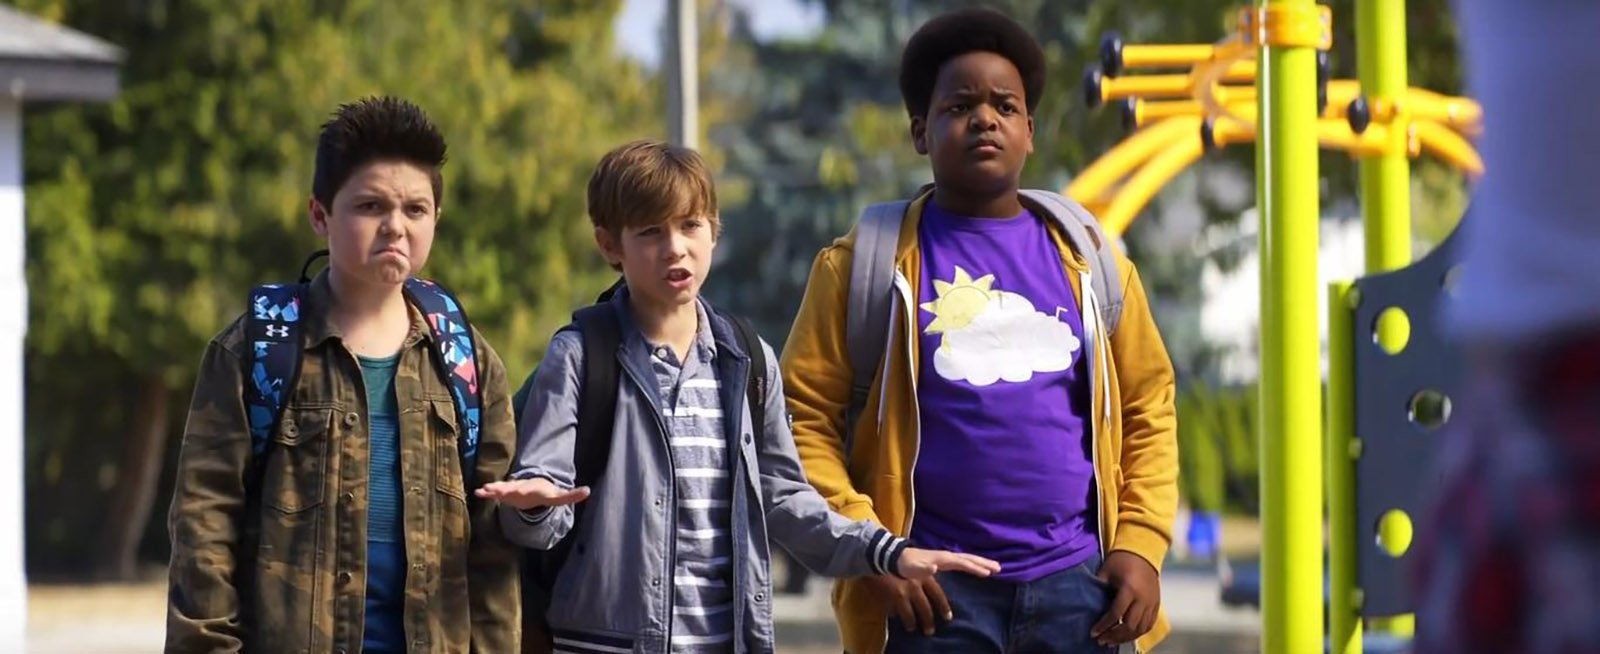 'Good Boys' wins the weekend at the box office